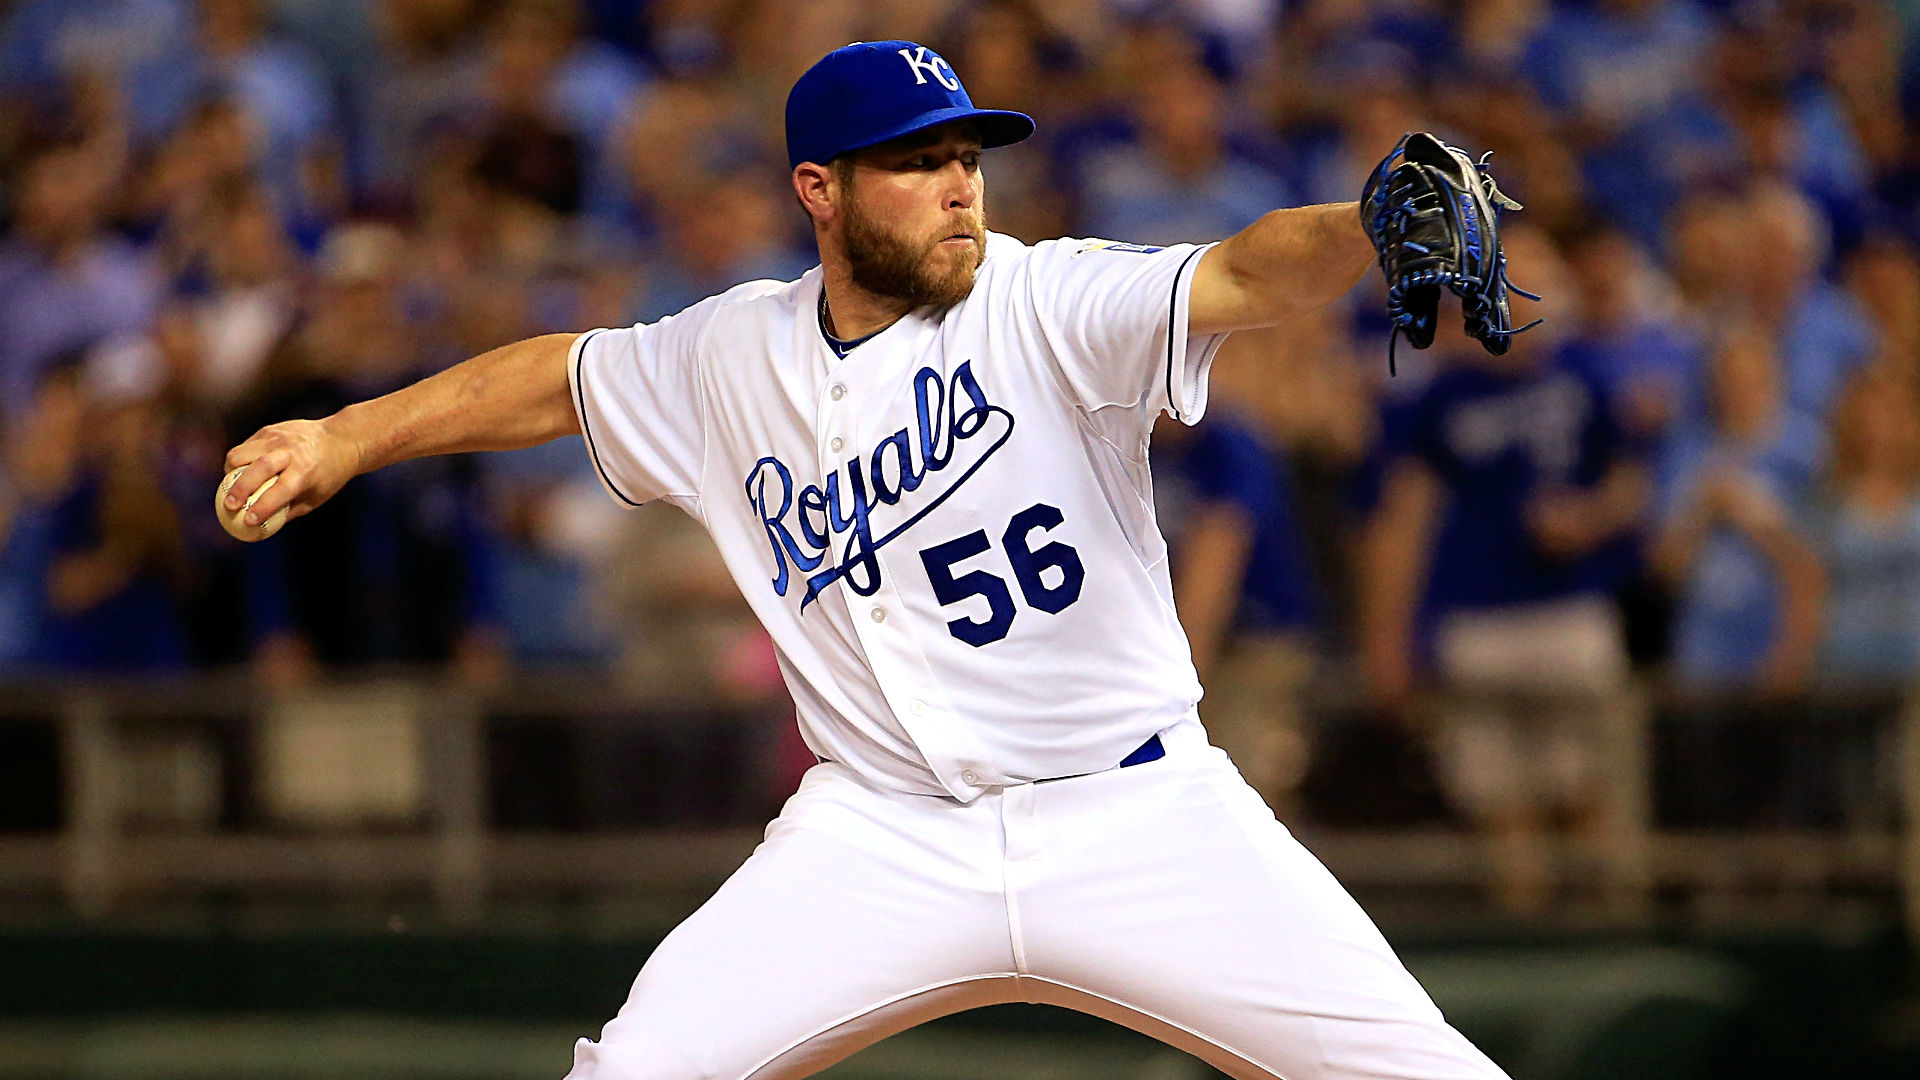 Greg Holland on 15-day DL